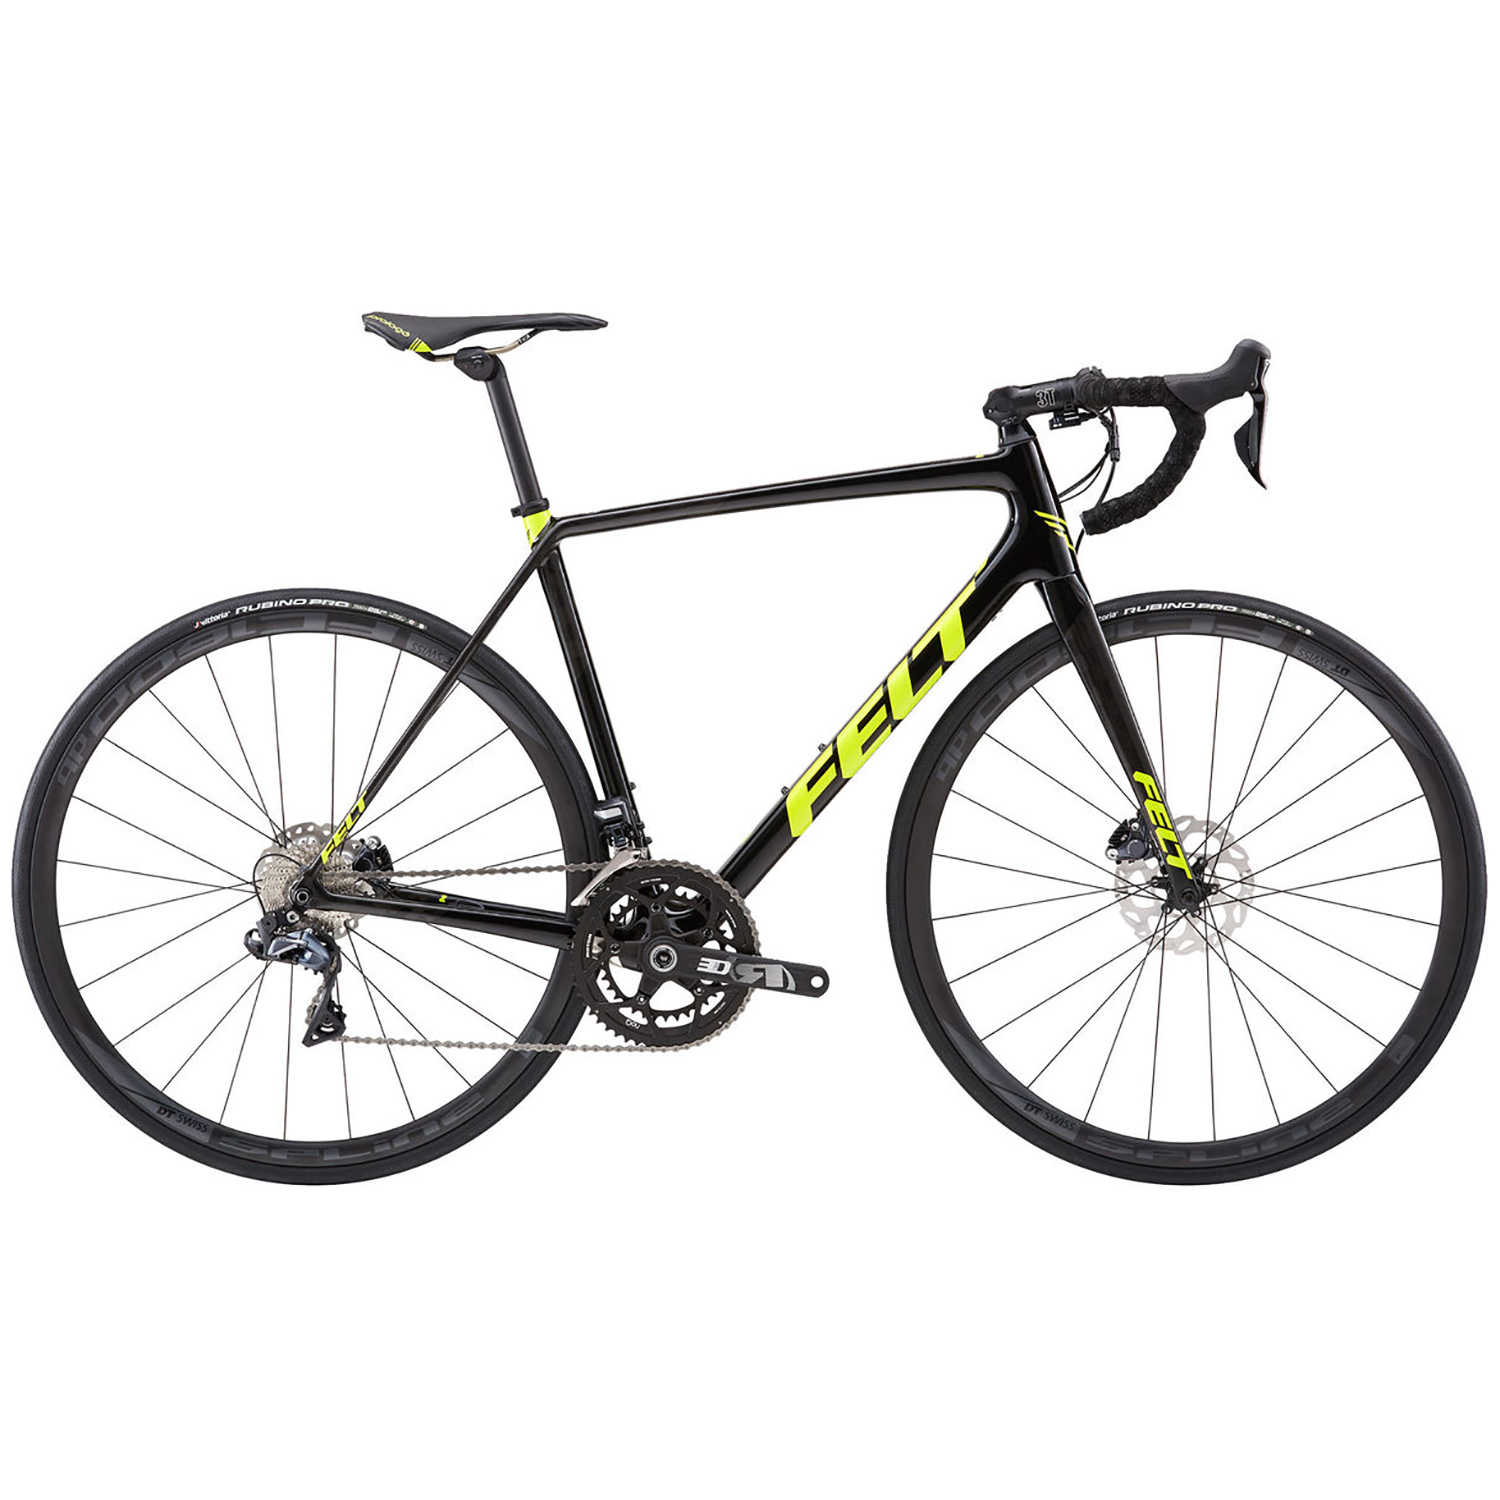 Felt FR2 Disc Di2 Carbon Road Bike - 2018